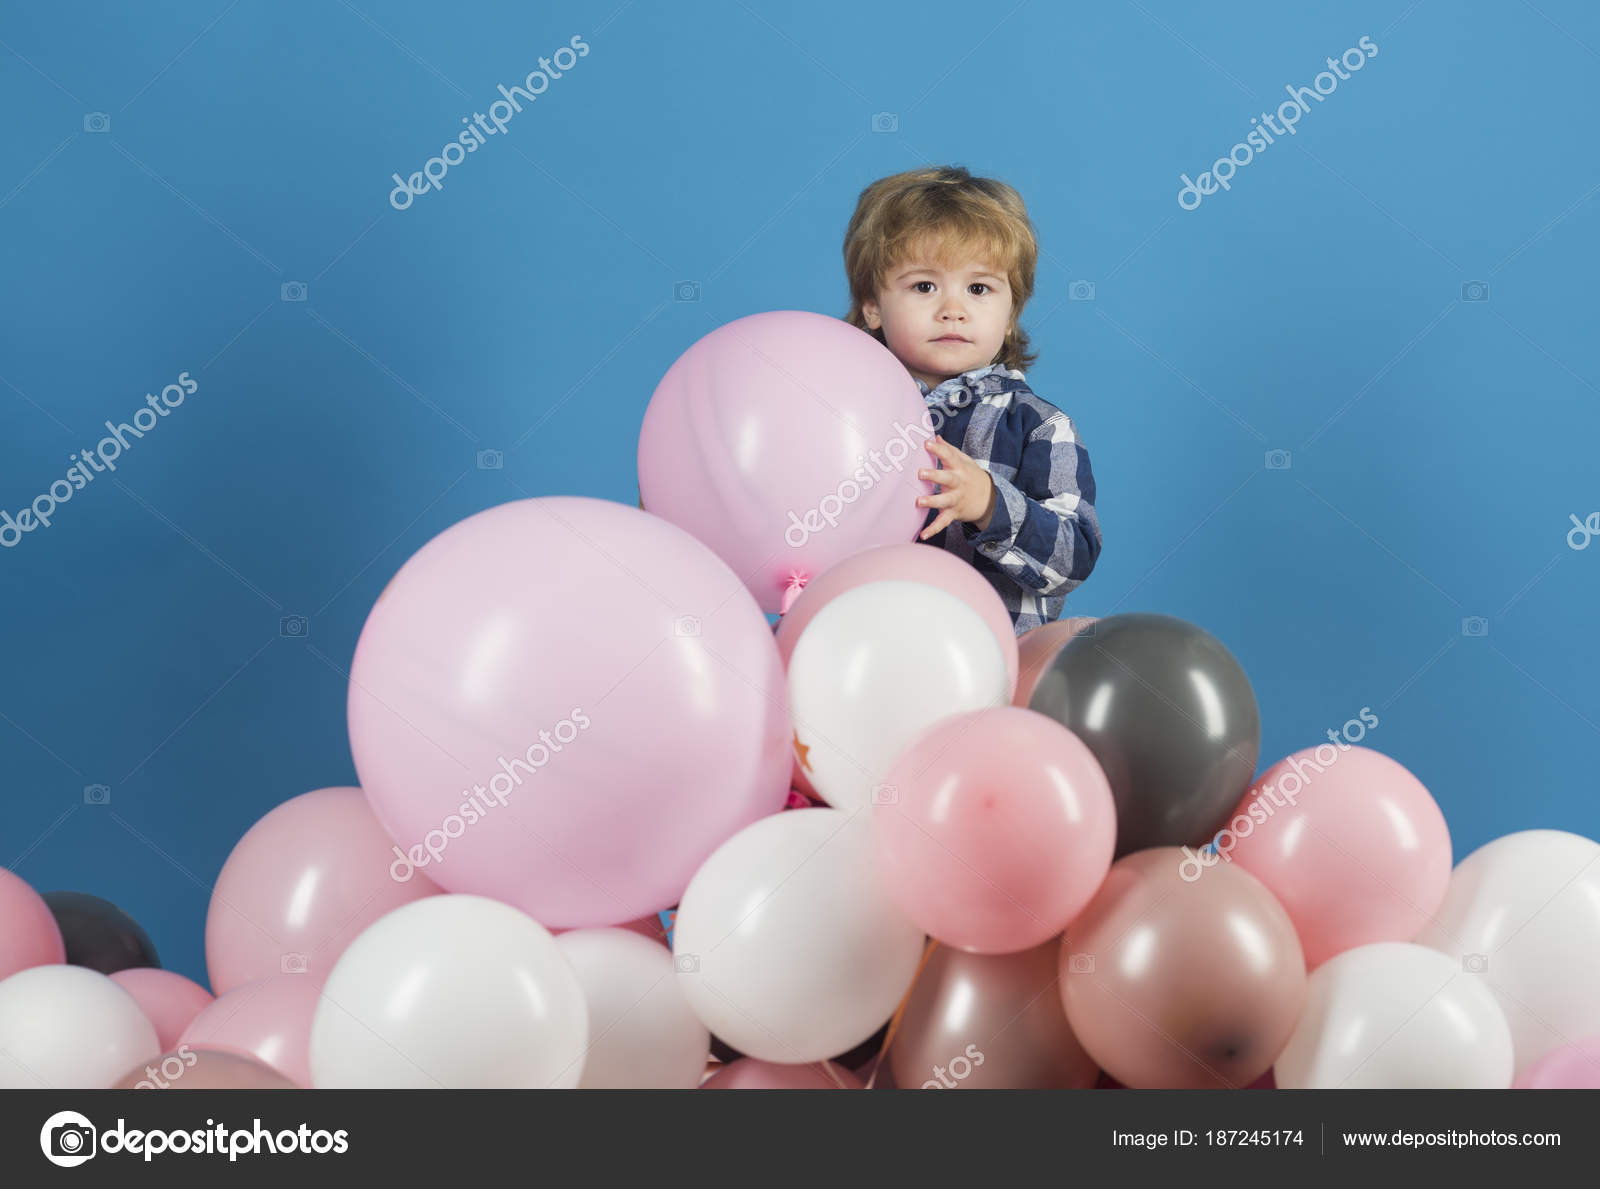 Boy Kid And Mountain Of Pink Balloons Birthday Holiday Or Opening New Children Shop Kindergarten Game Good Mood Child Holding Keeps Ball Toy